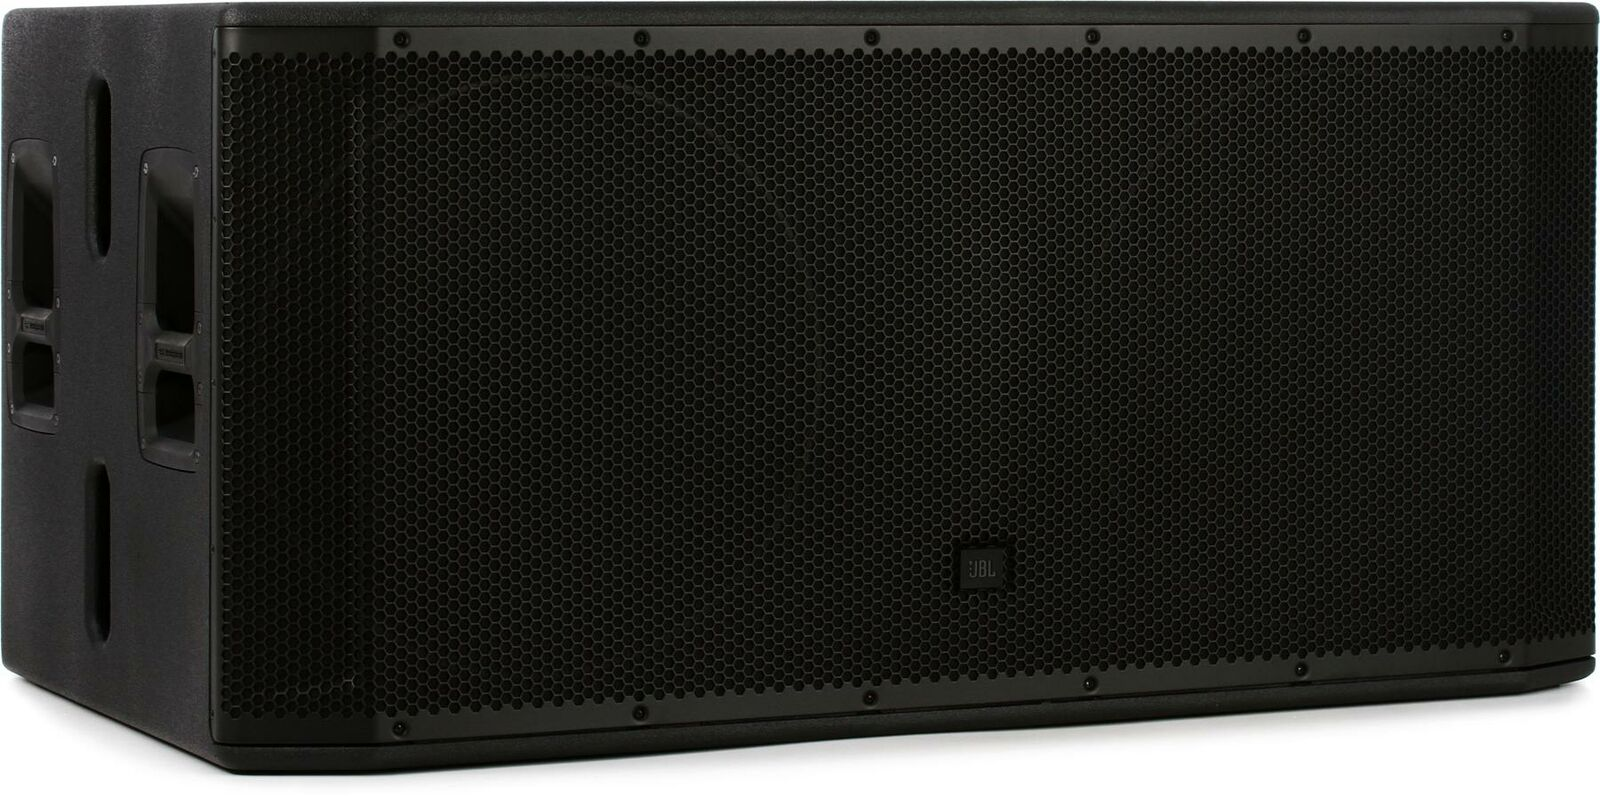 JBL SRX828SP 2000W Dual 18 inch Powered Subwoofer. Available Now for 2119.00